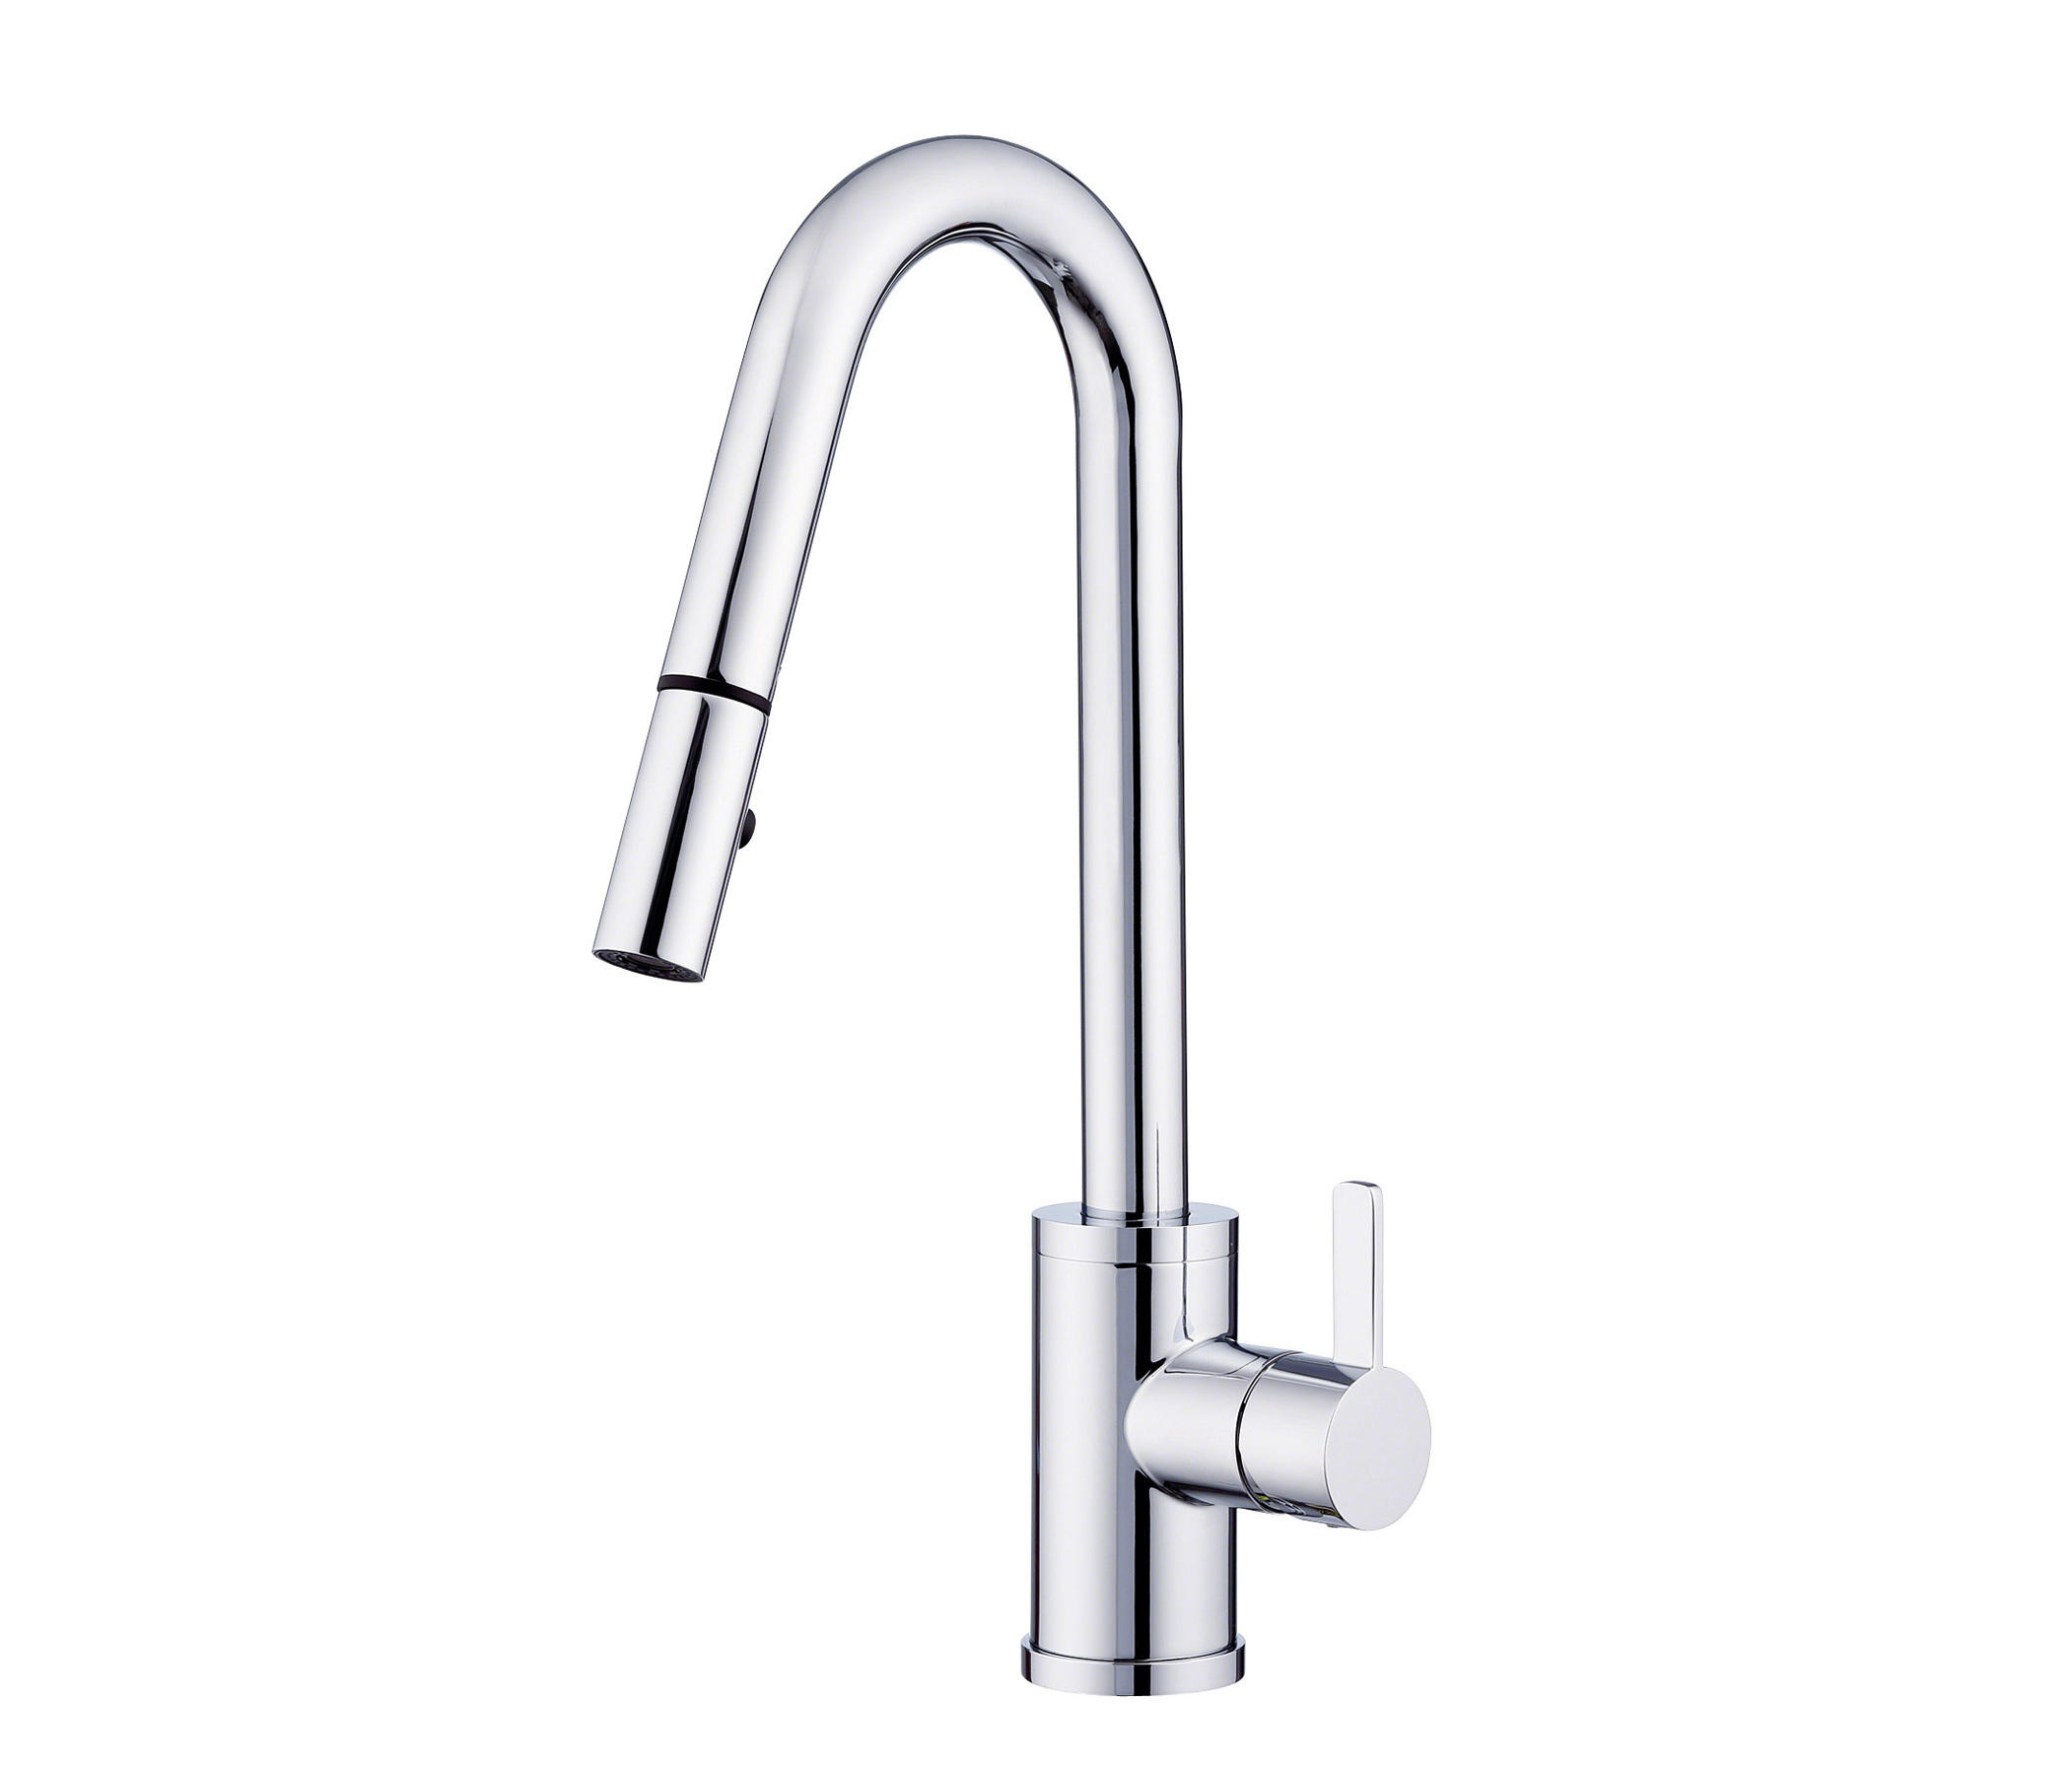 north danze ruehlen company dan htm carolina faucets sheridan rise kitchen supply high faucet